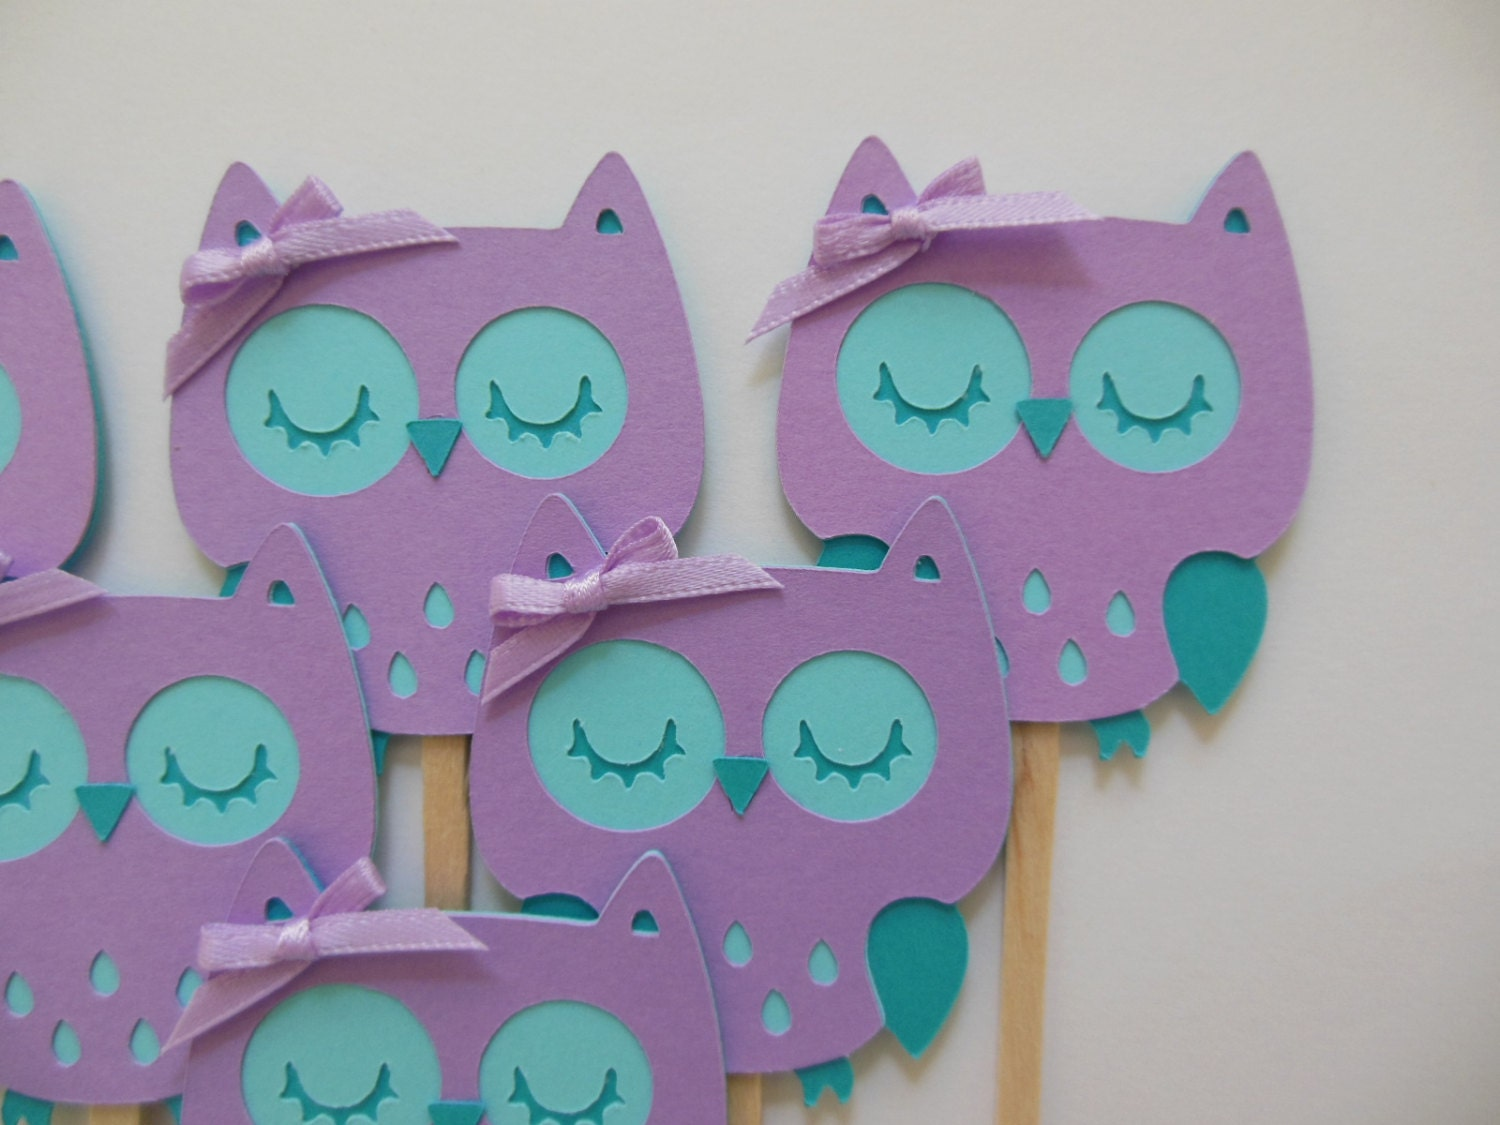 Turquoise Baby Shower Decorations Owl Cupcake Toppers Lavender And Aqua Girl Birthday Party